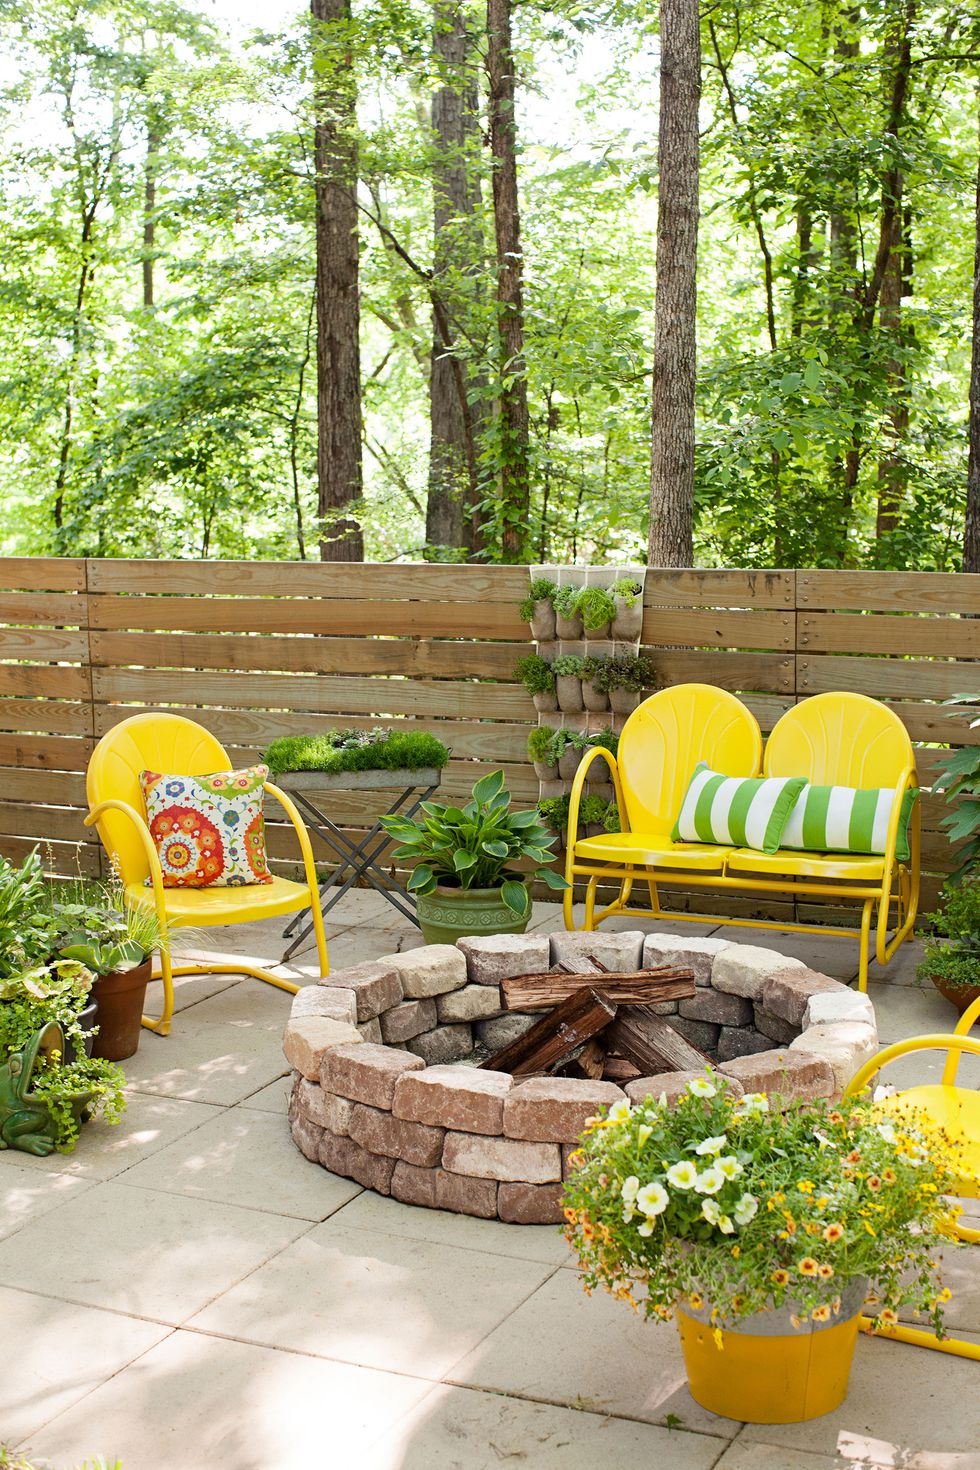 yellow outdoor furniture on stone patio in the woods